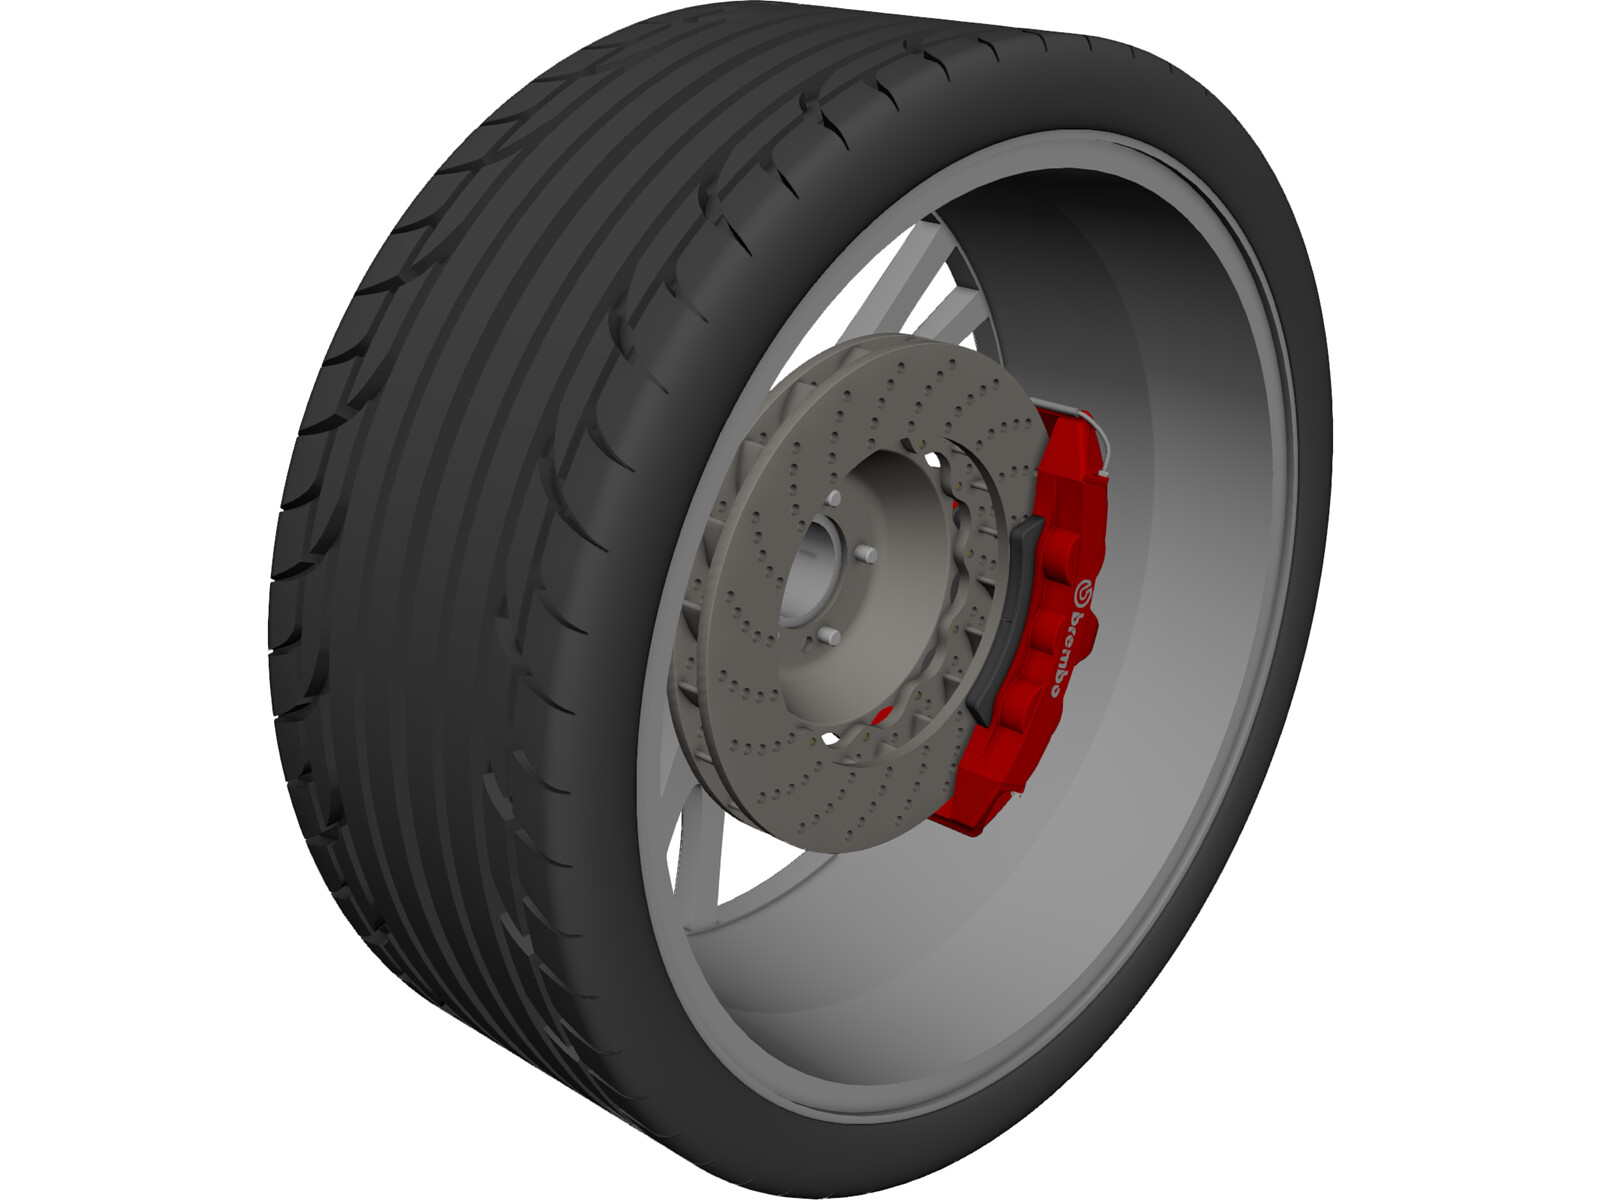 Wheel/Tire with Caliper and Rotor 3D CAD Model